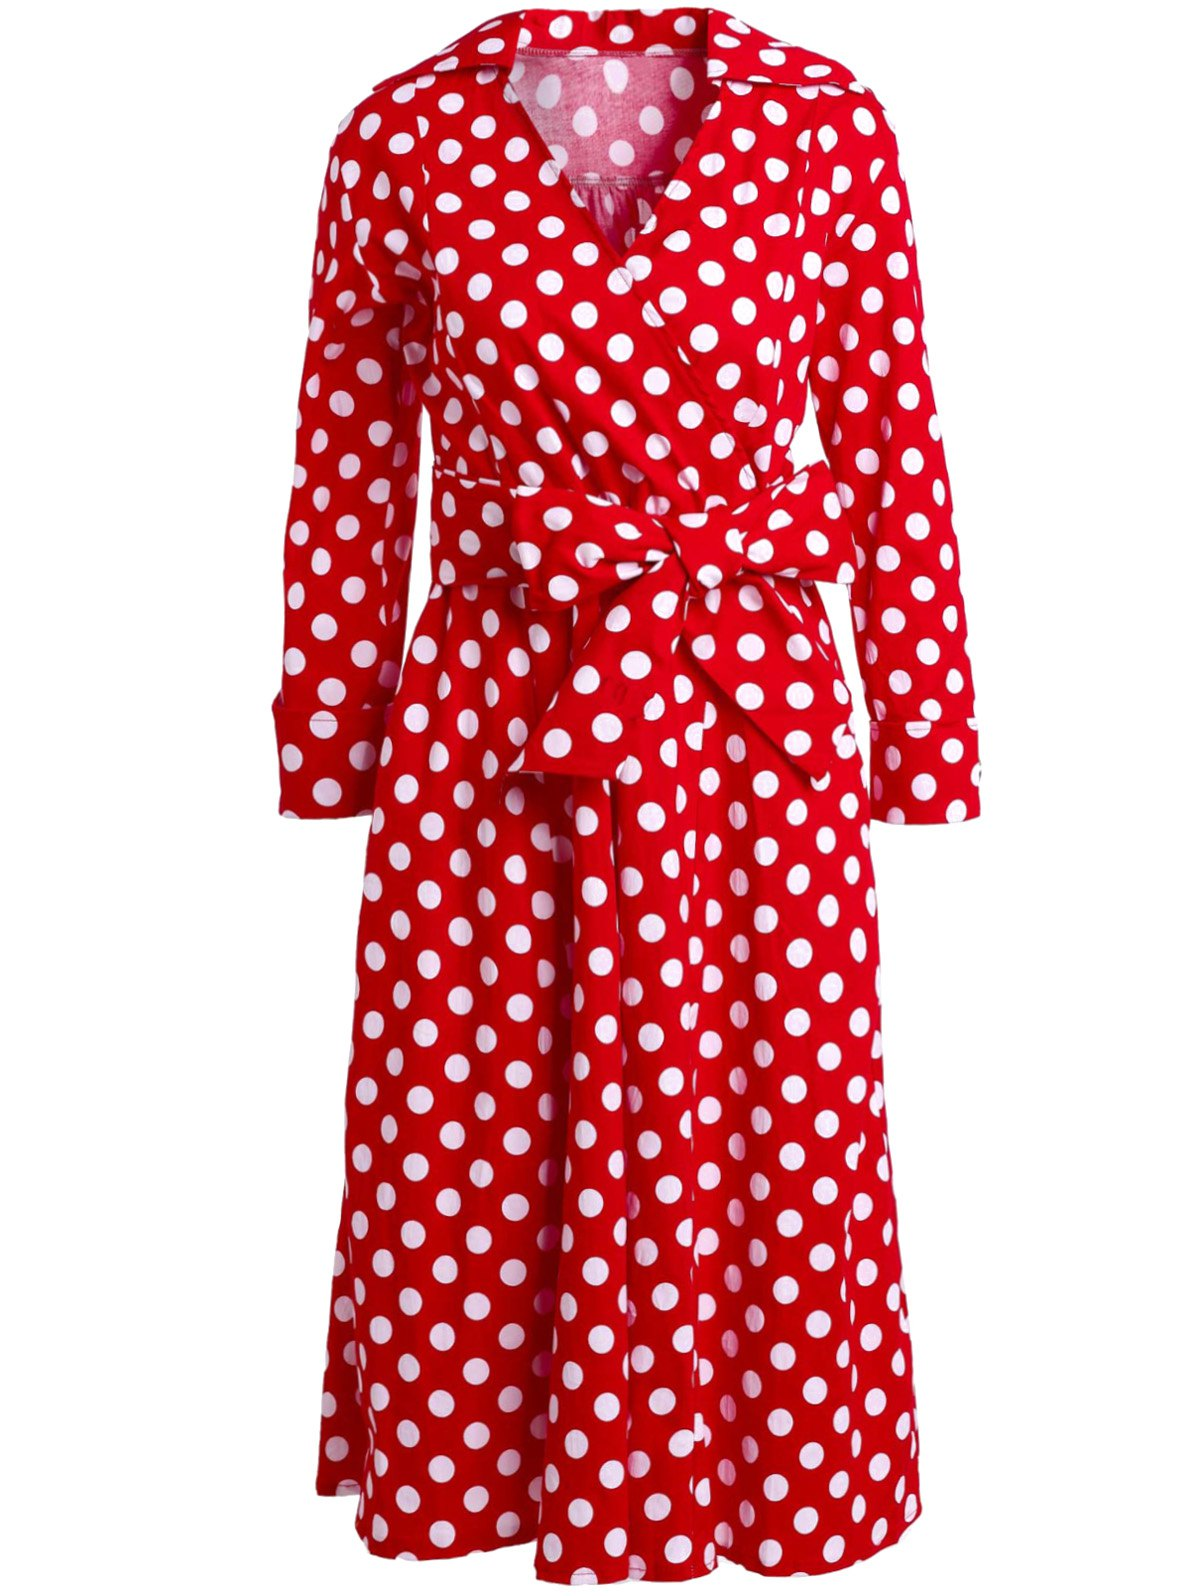 Retro Style Polka Dot Printed 3/4 Sleeve Bowknot Belted Ball Gown Dress For Women - S RED